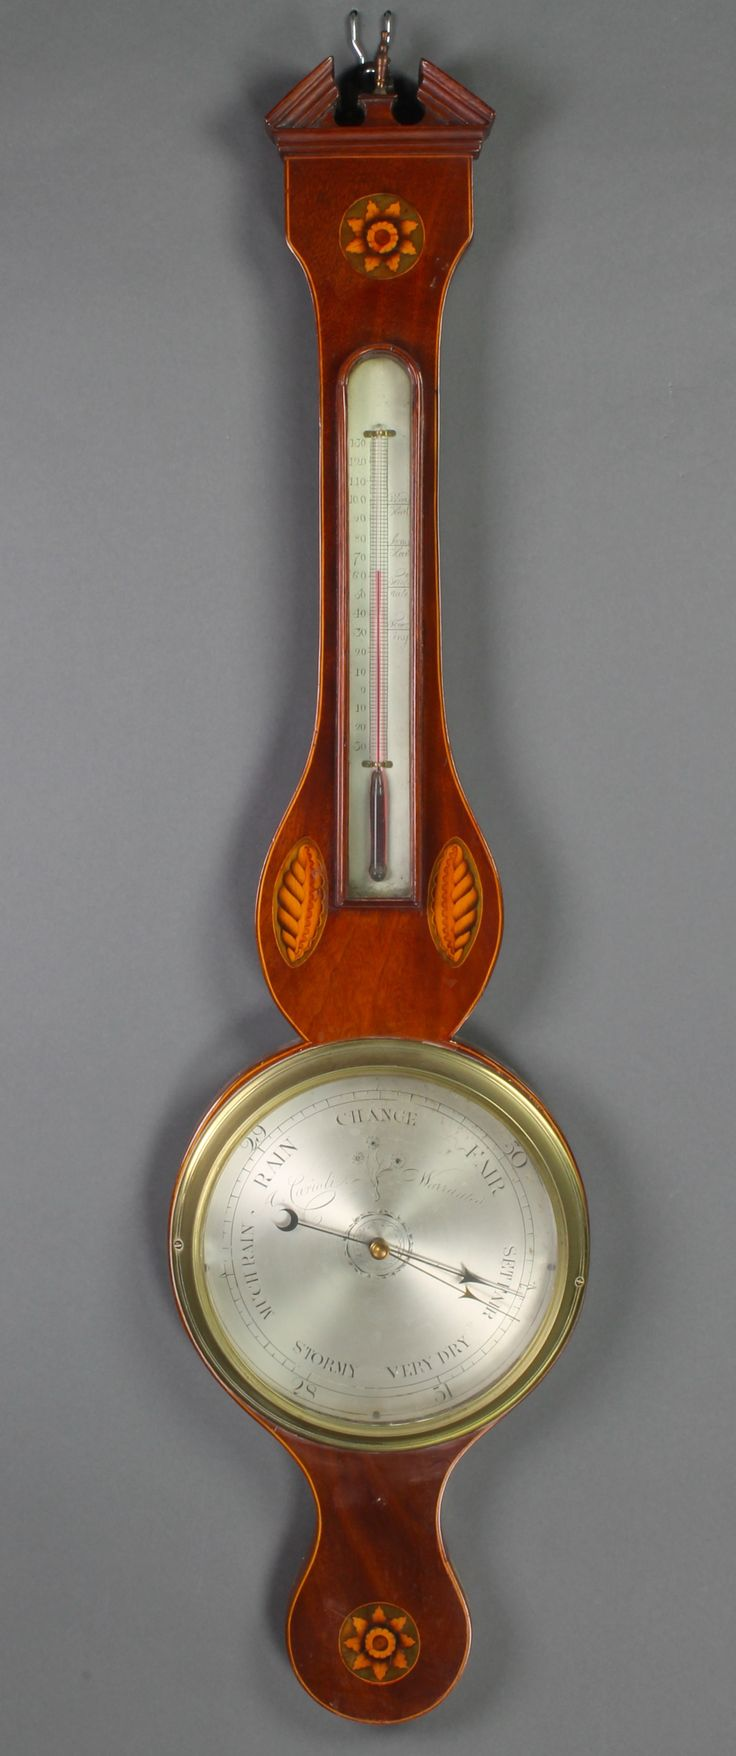 Lot 1083, A 19th Century mercury wheel barometer and thermometer contained in an inlaid mahogany case with broken pediment and silvered dial, est  £80-120